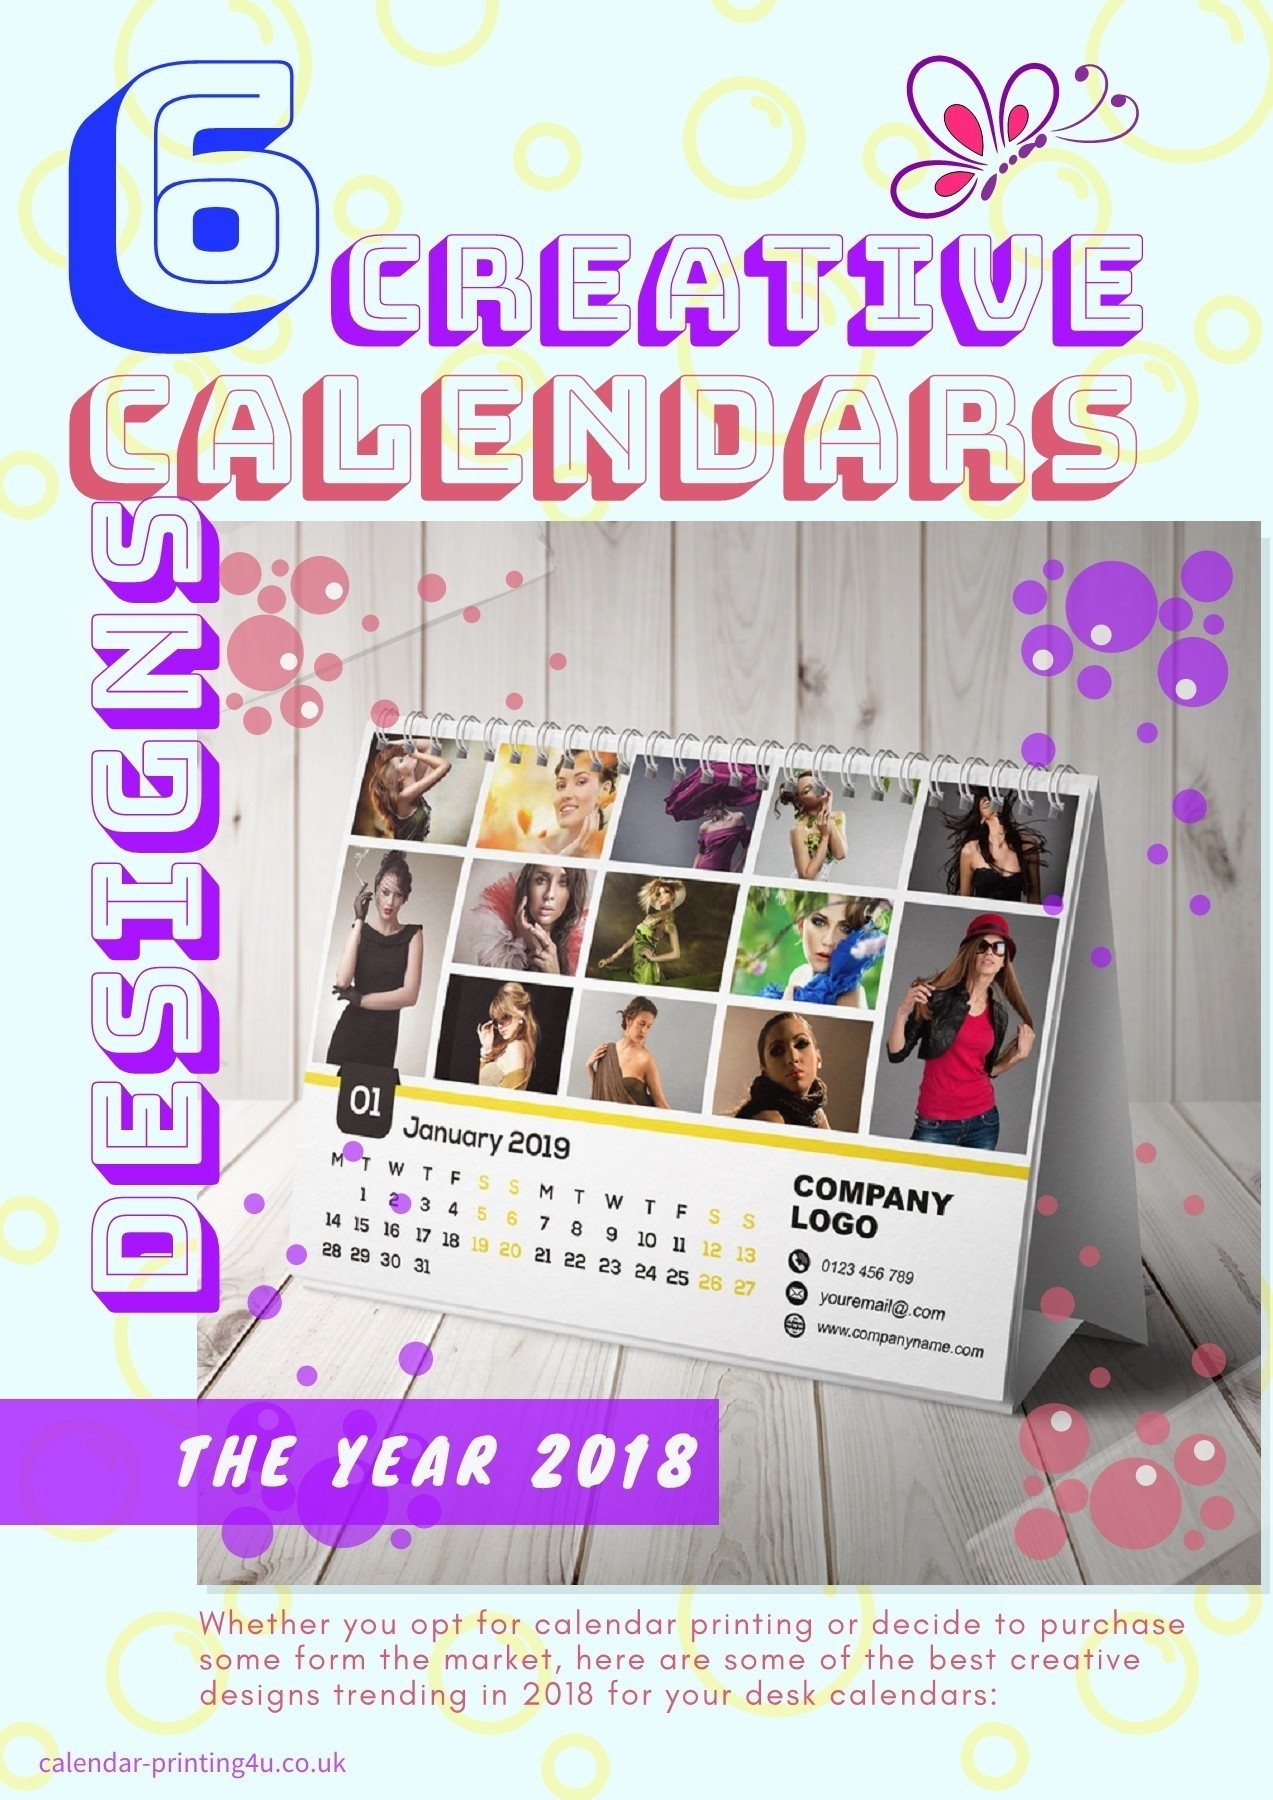 6 Creative Calendar Design Ideas For Your Desk For The Year 2019